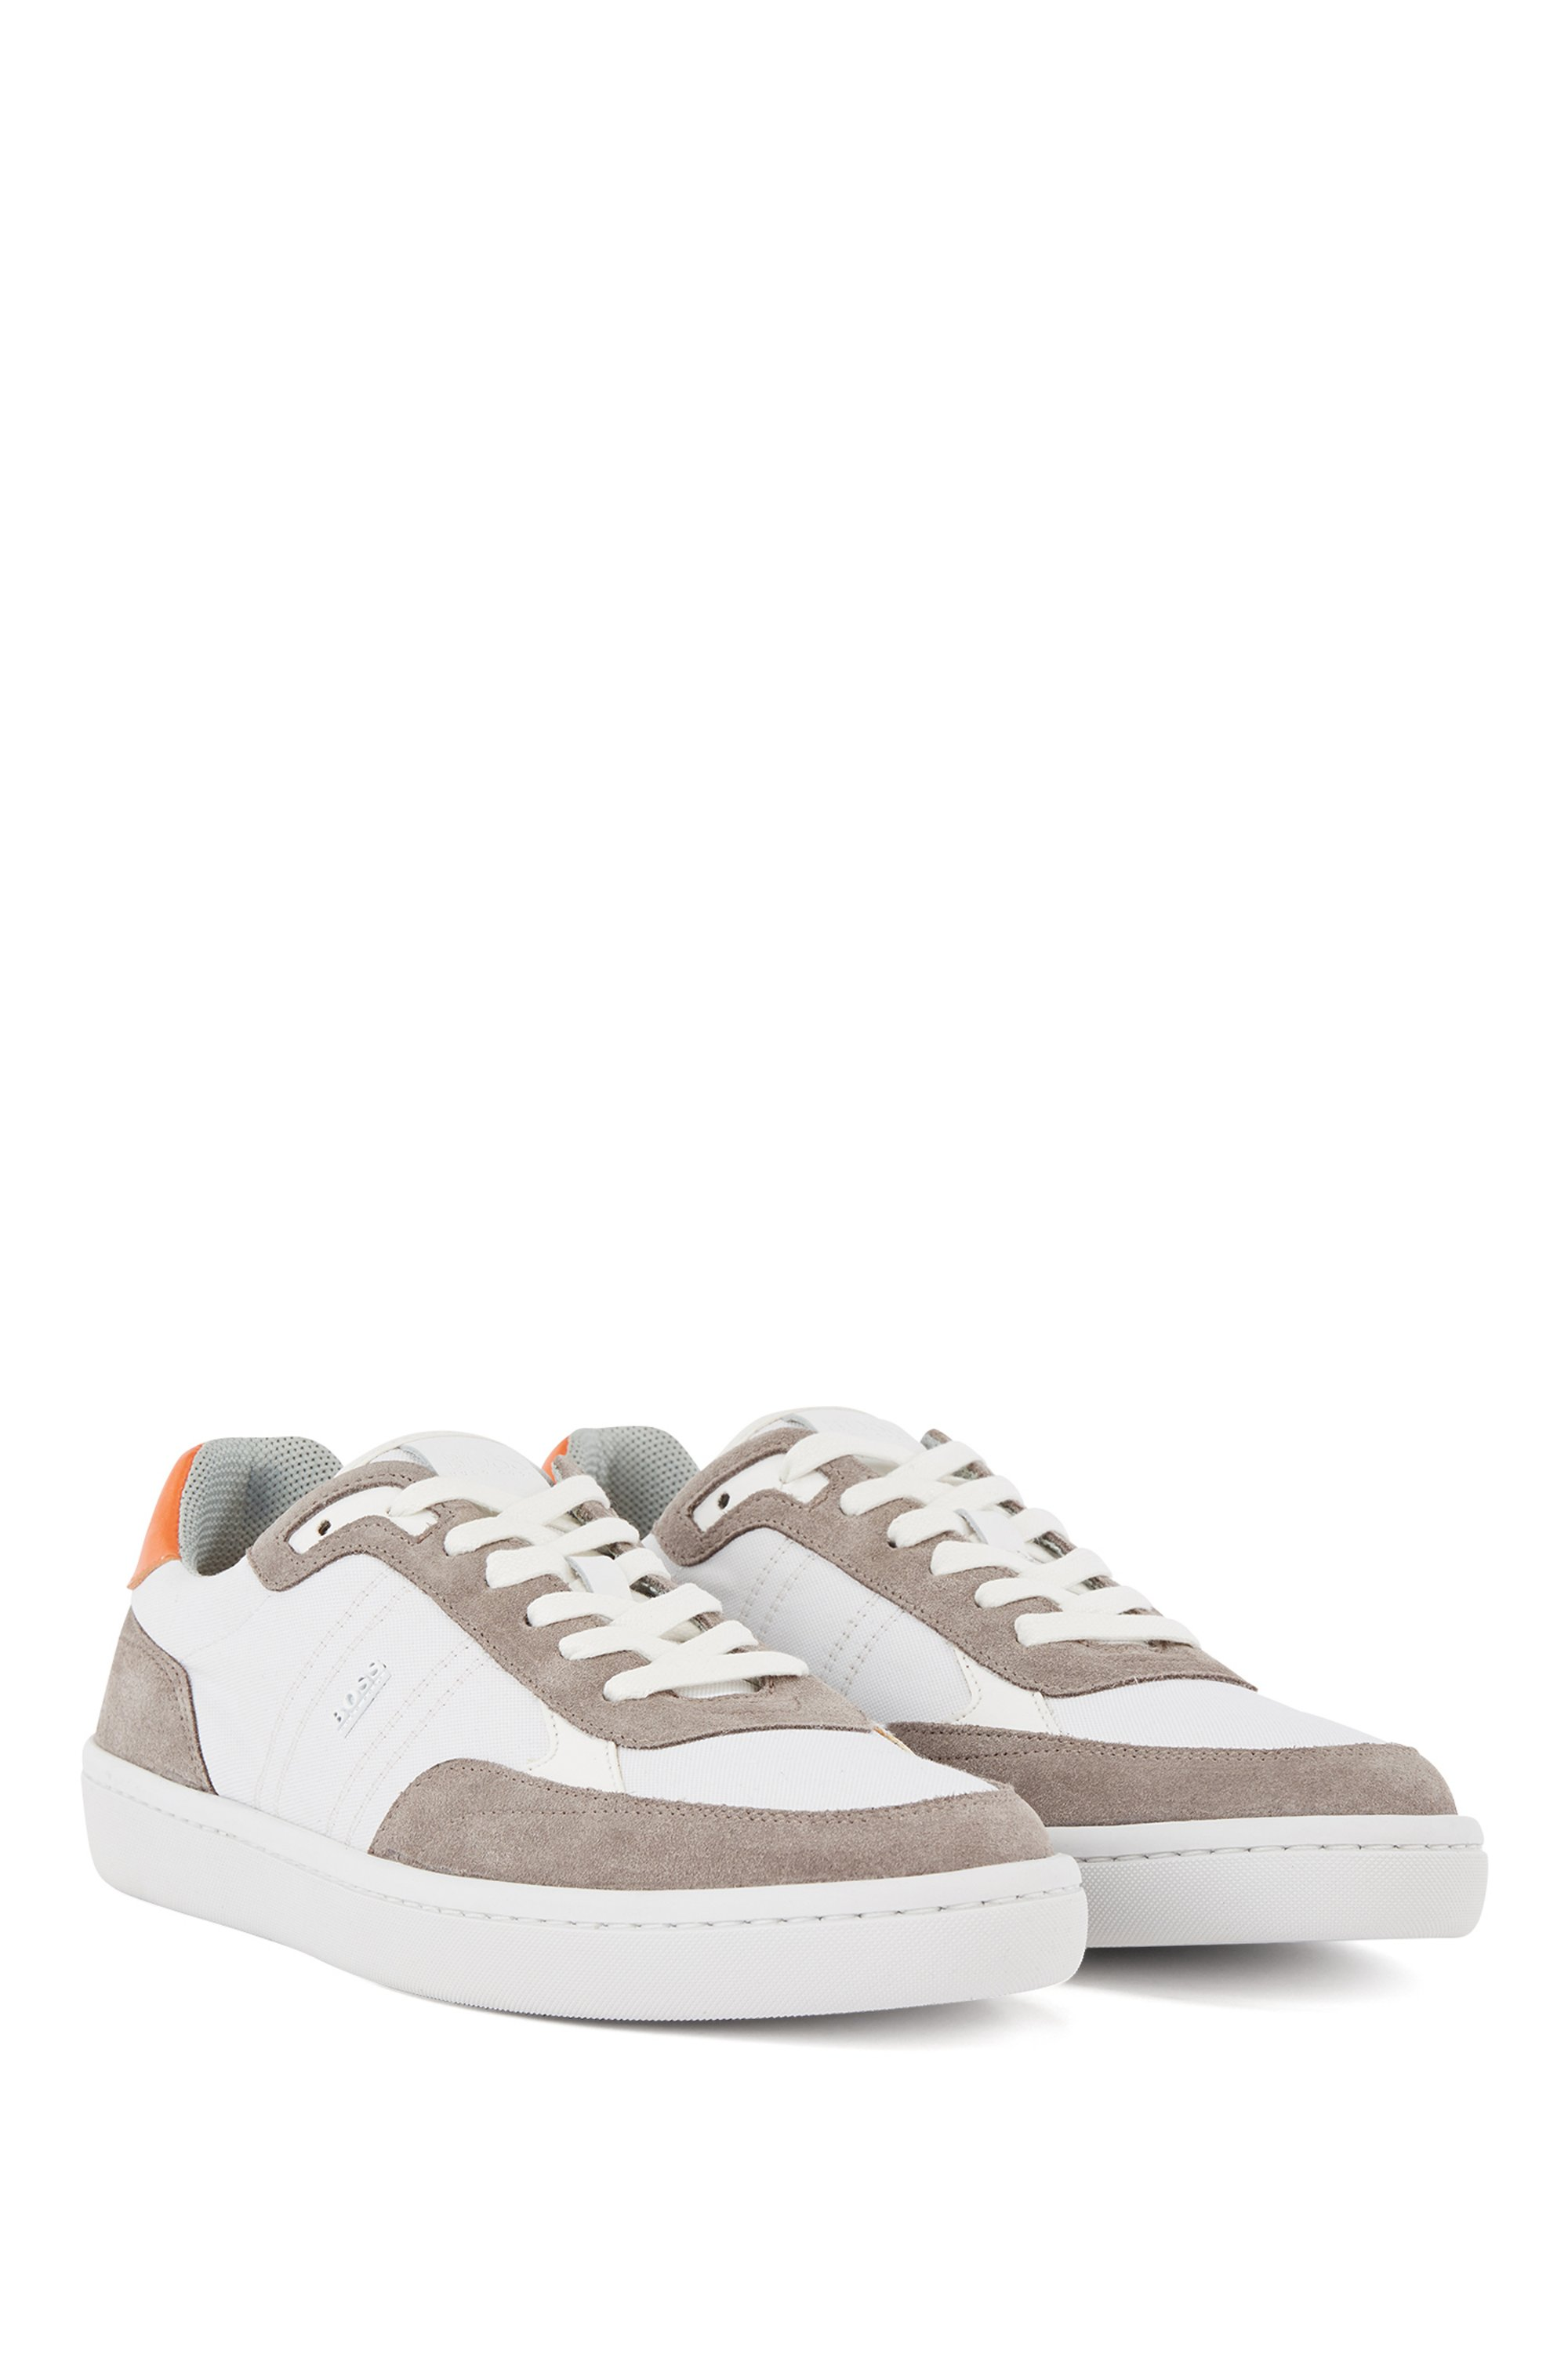 Cupsole trainers in SEAQUAL™ fabric with suede trims